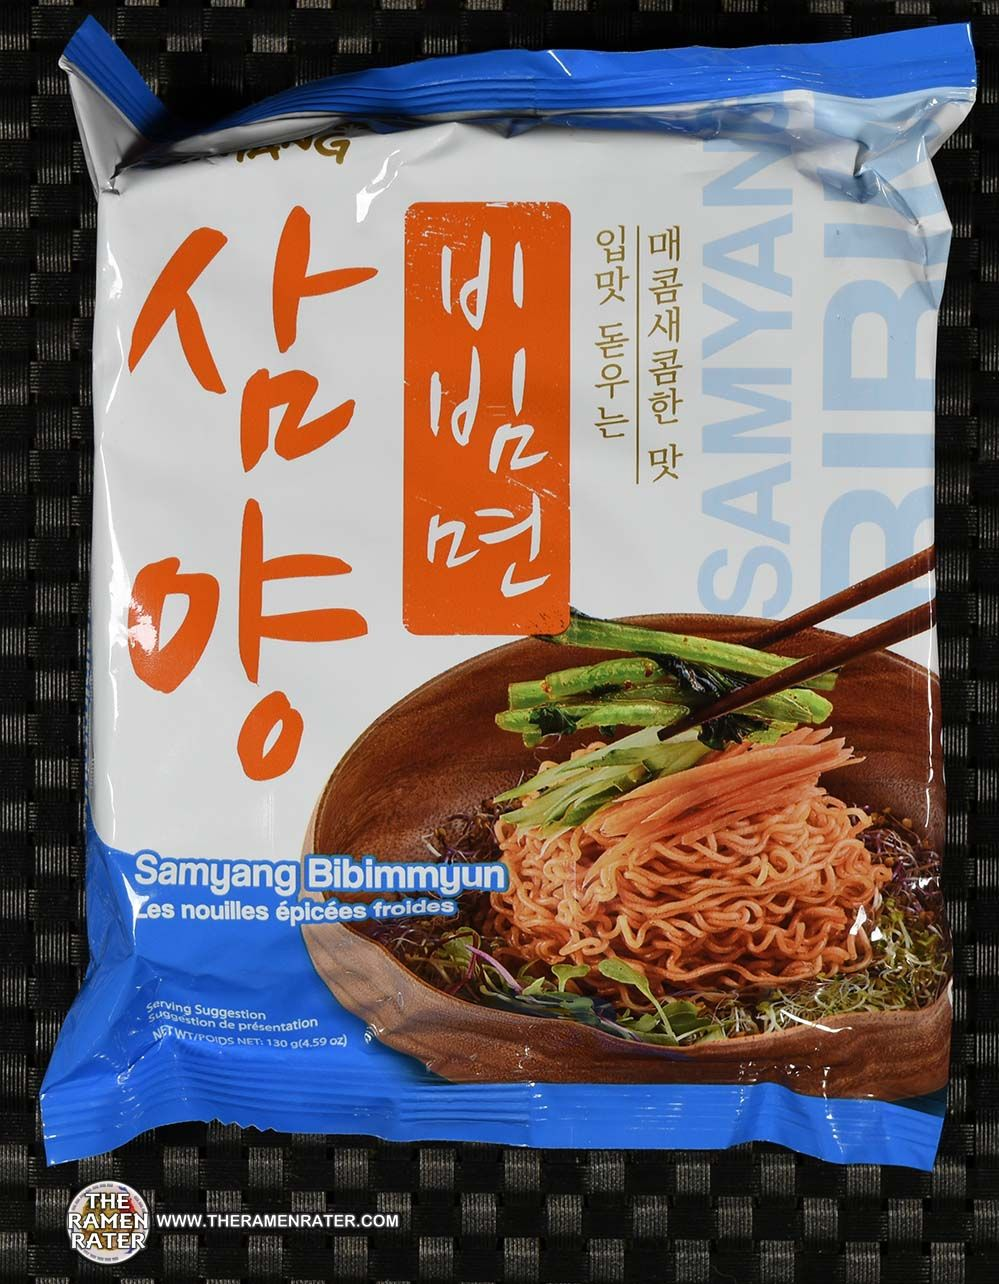 #3335: Samyang Foods Bibimmyun - South Korea